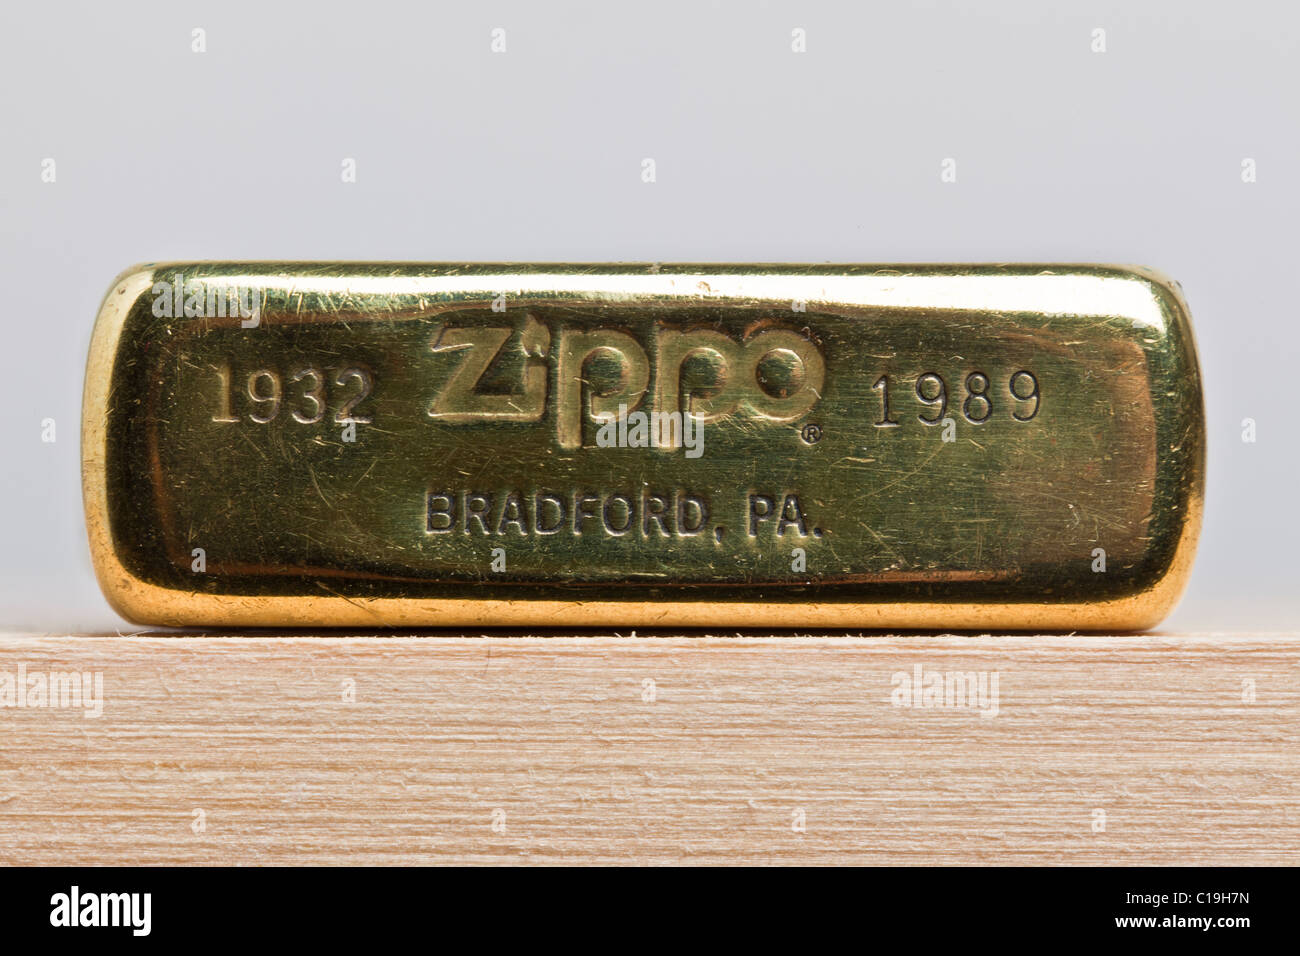 Base of brass Zippo lighter, showing logo - Stock Image